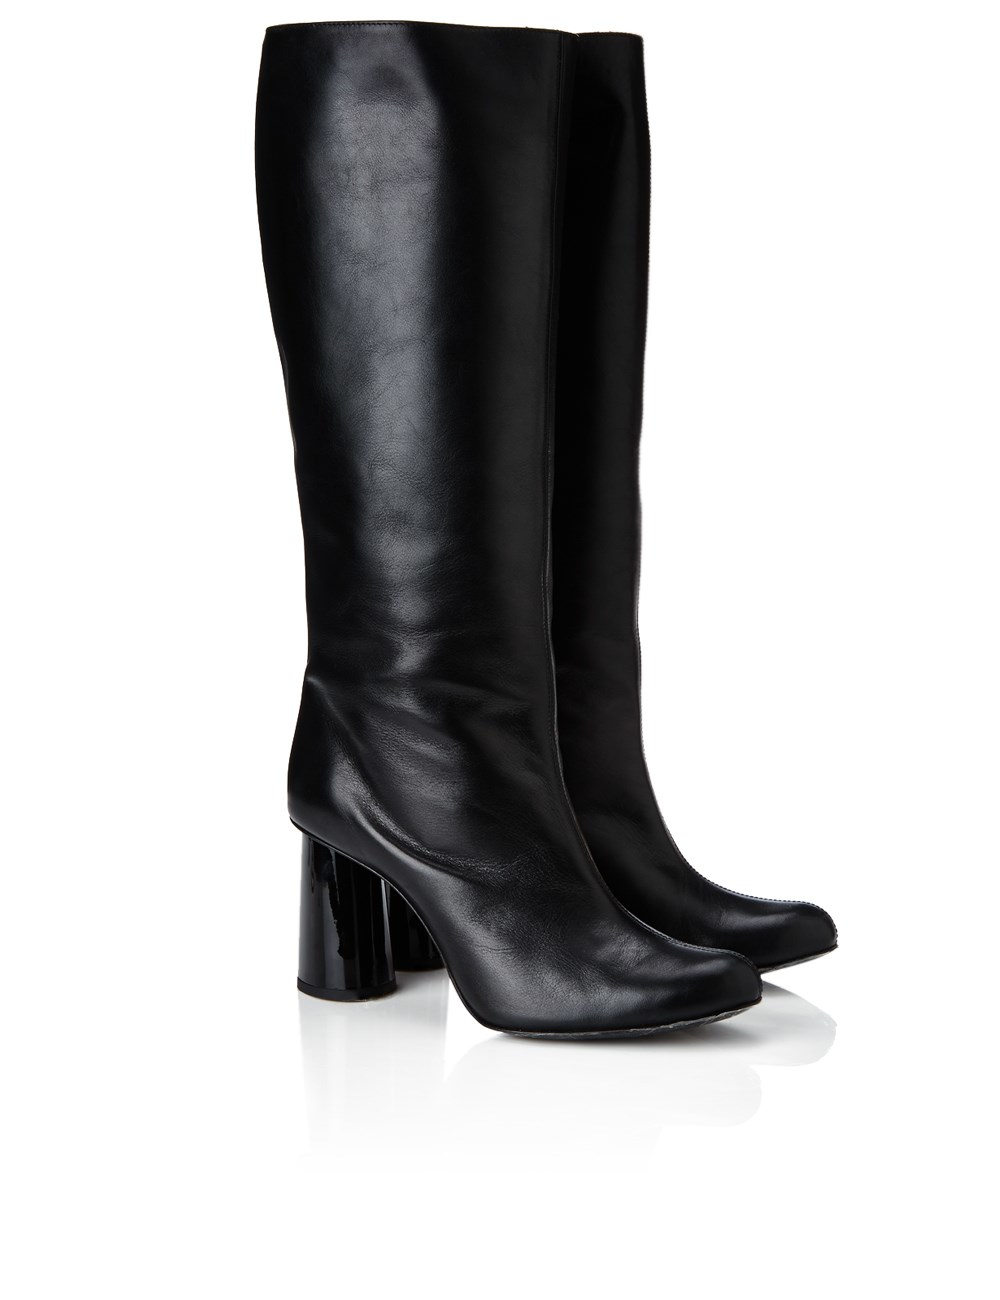 Long Boots. Get set for cold weather in a stylish pair of long boots. Great for matching to all the pieces in your fall and winter wardrobe, these shoes are essentials!